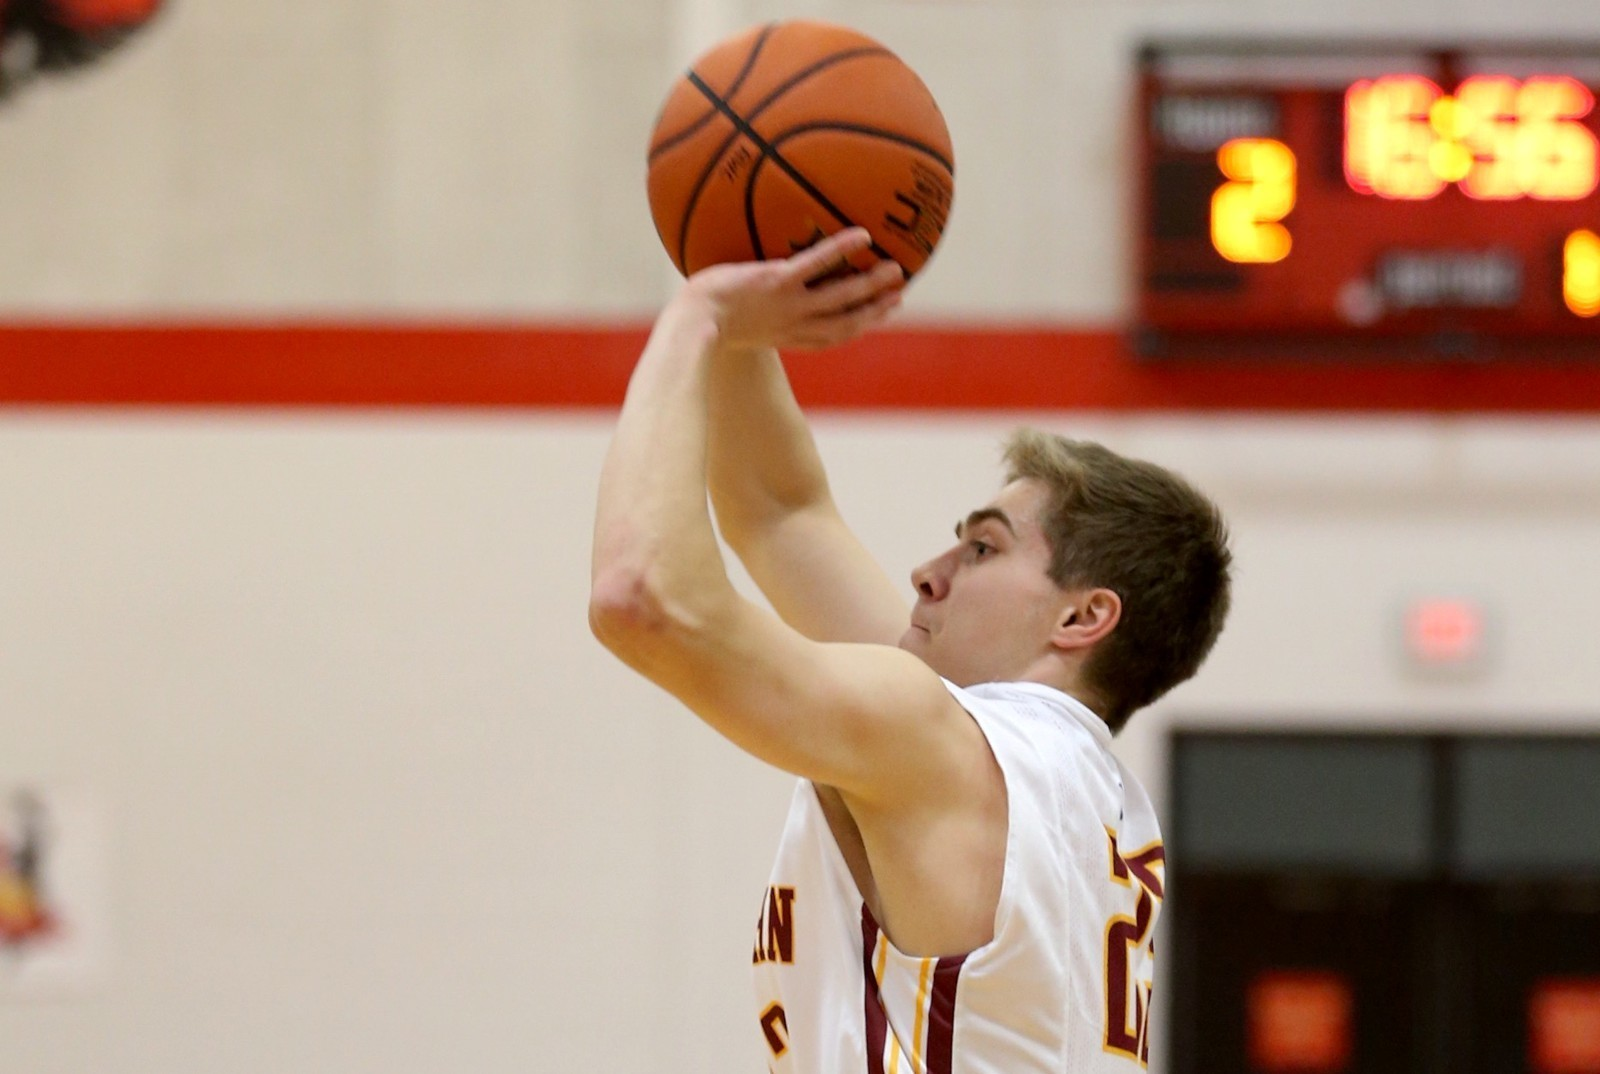 Mens basketball rallies past ithaca st john fisher college athletics sausville publicscrutiny Choice Image